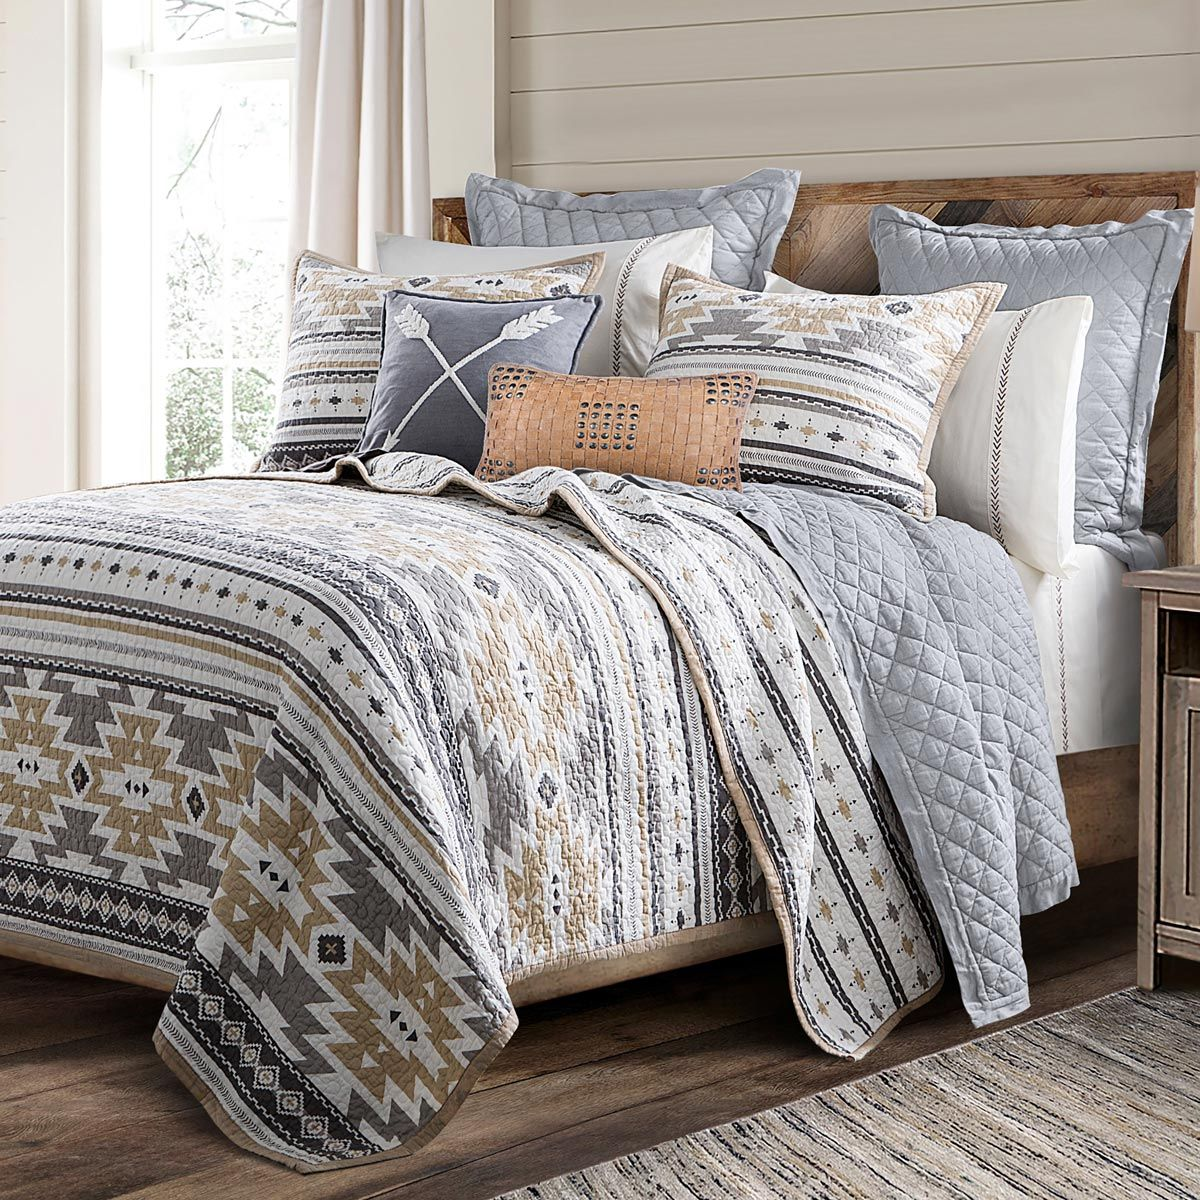 Diamond Haze Quilt Set - Queen